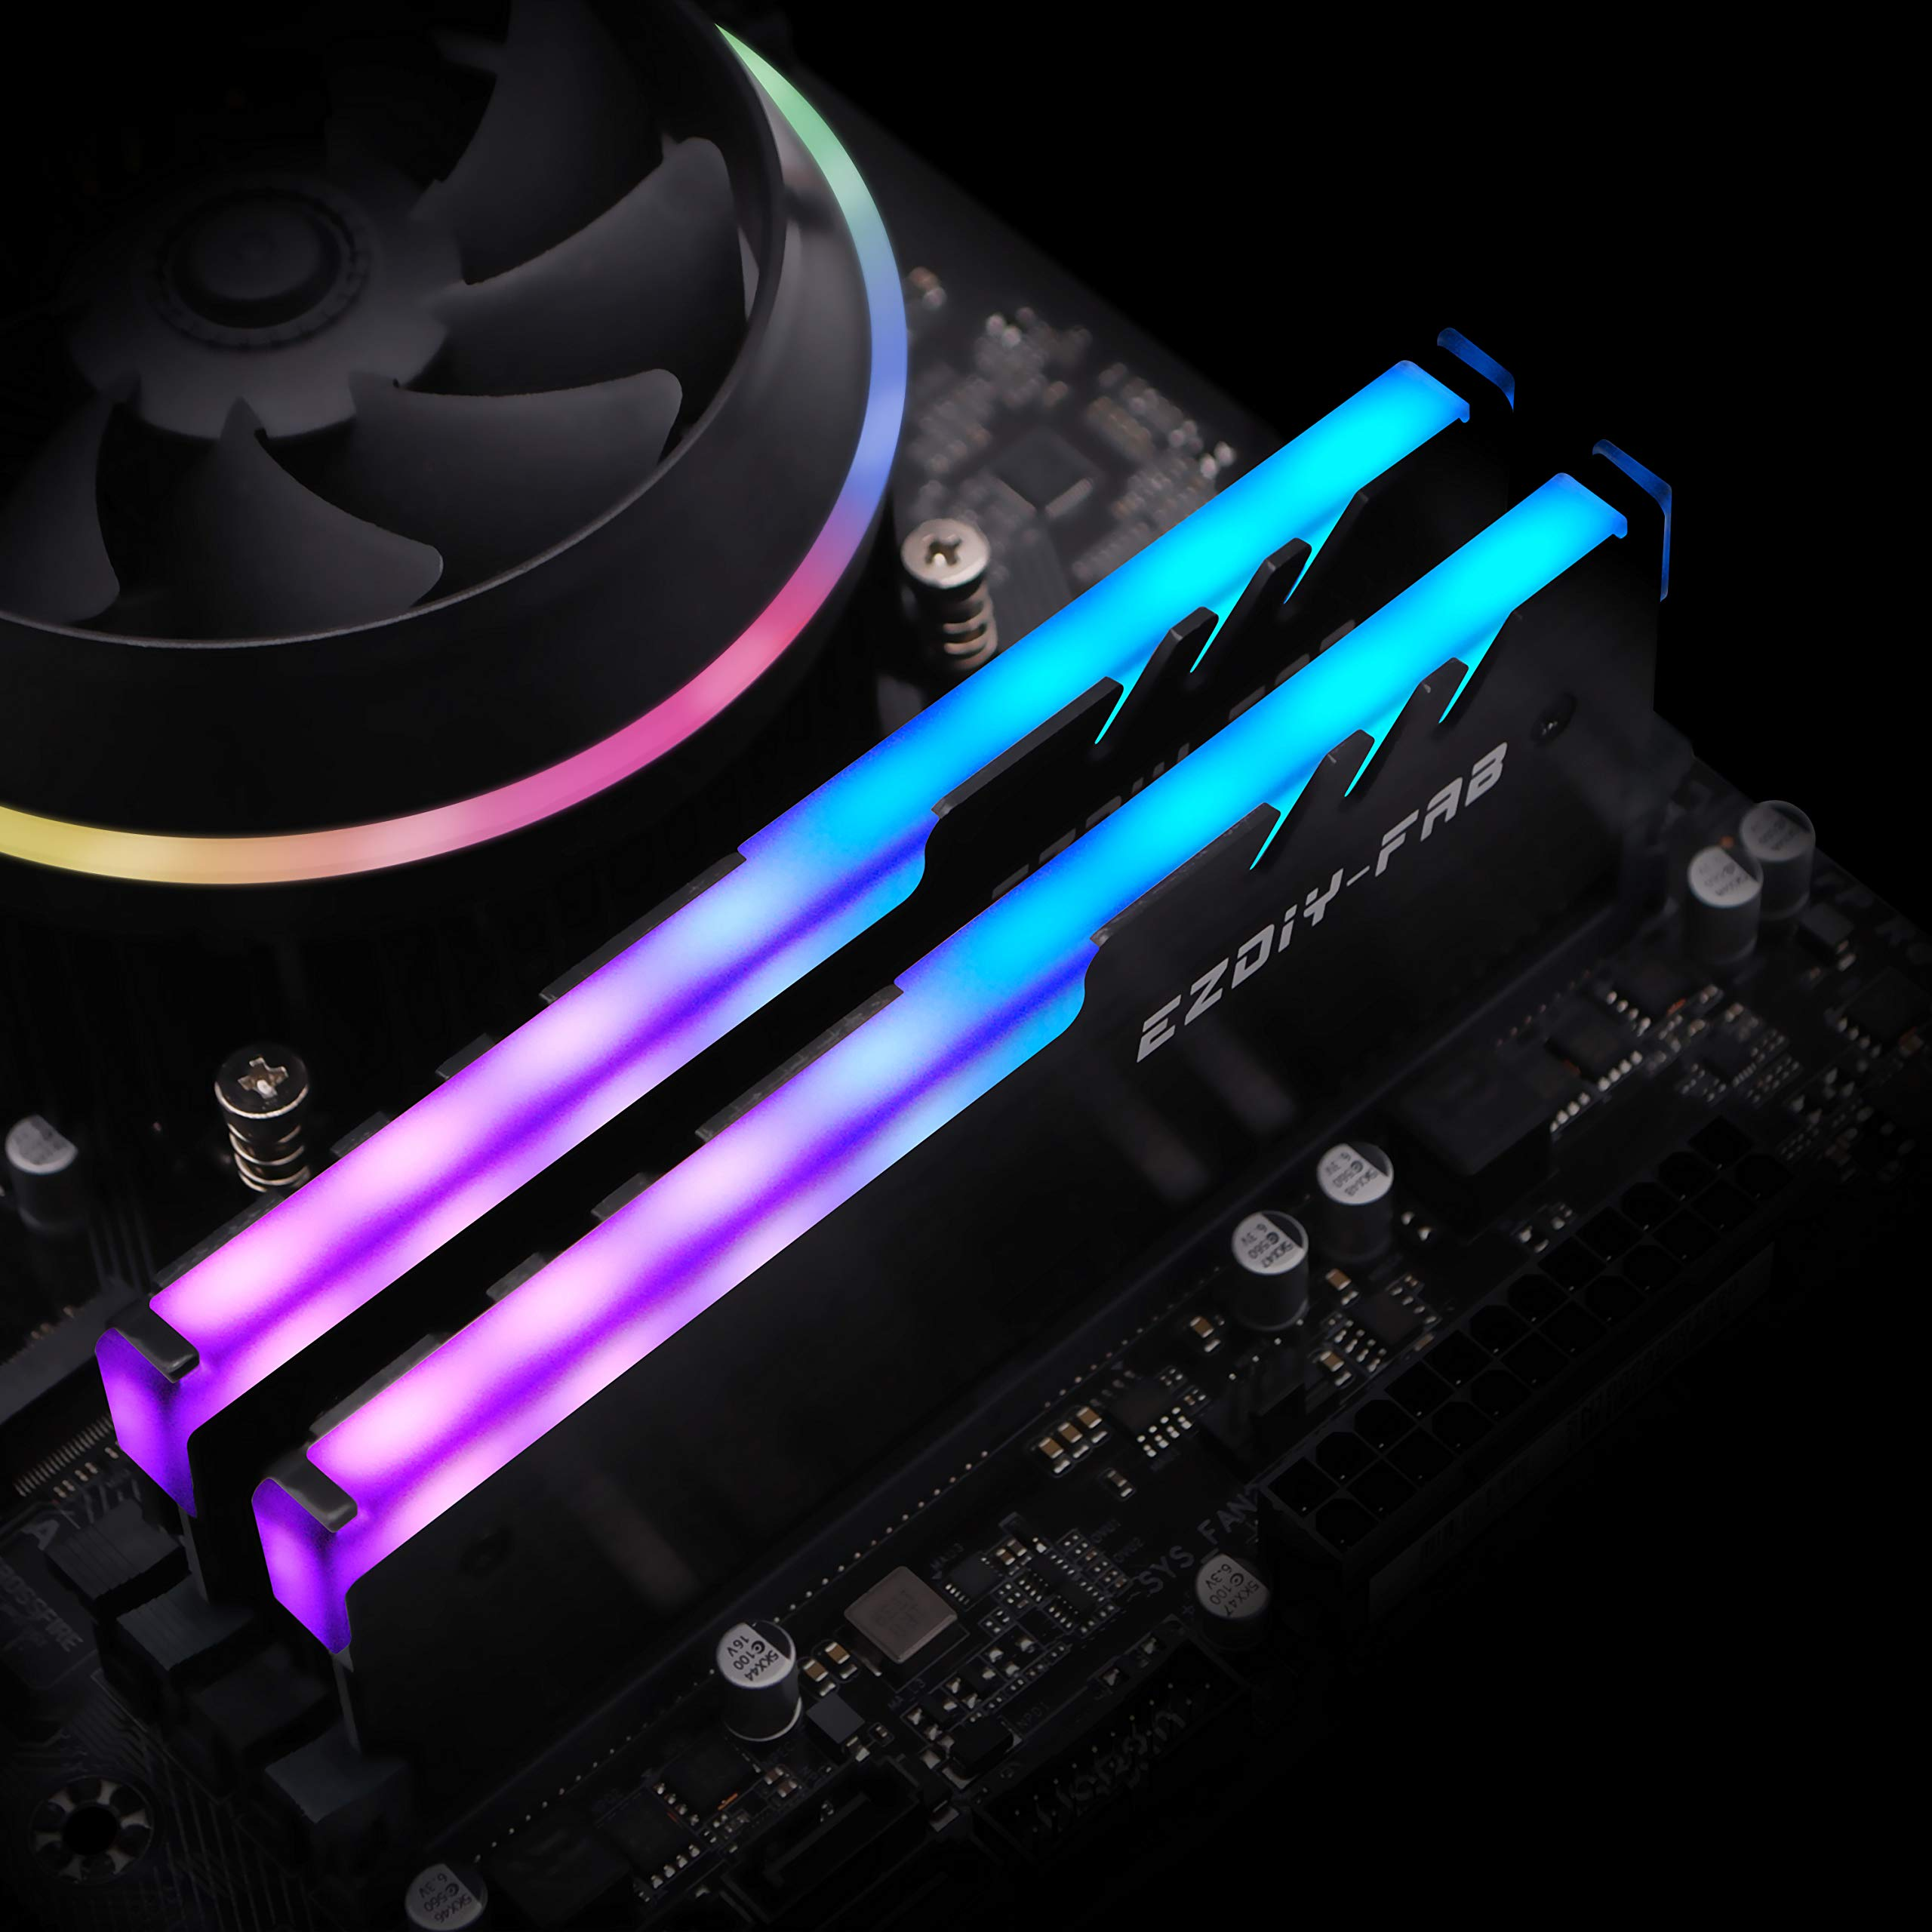 -Black-1 Pack Compatible with ASUS Aura Sync, GIGABYTE RGB Fusion and MSI Mystic Light Sync EZDIY-FAB DDR RGB Addressable Memory Ram Cooler Heatsink for DIY PC Game Overclocking MOD DDR3 DDR4